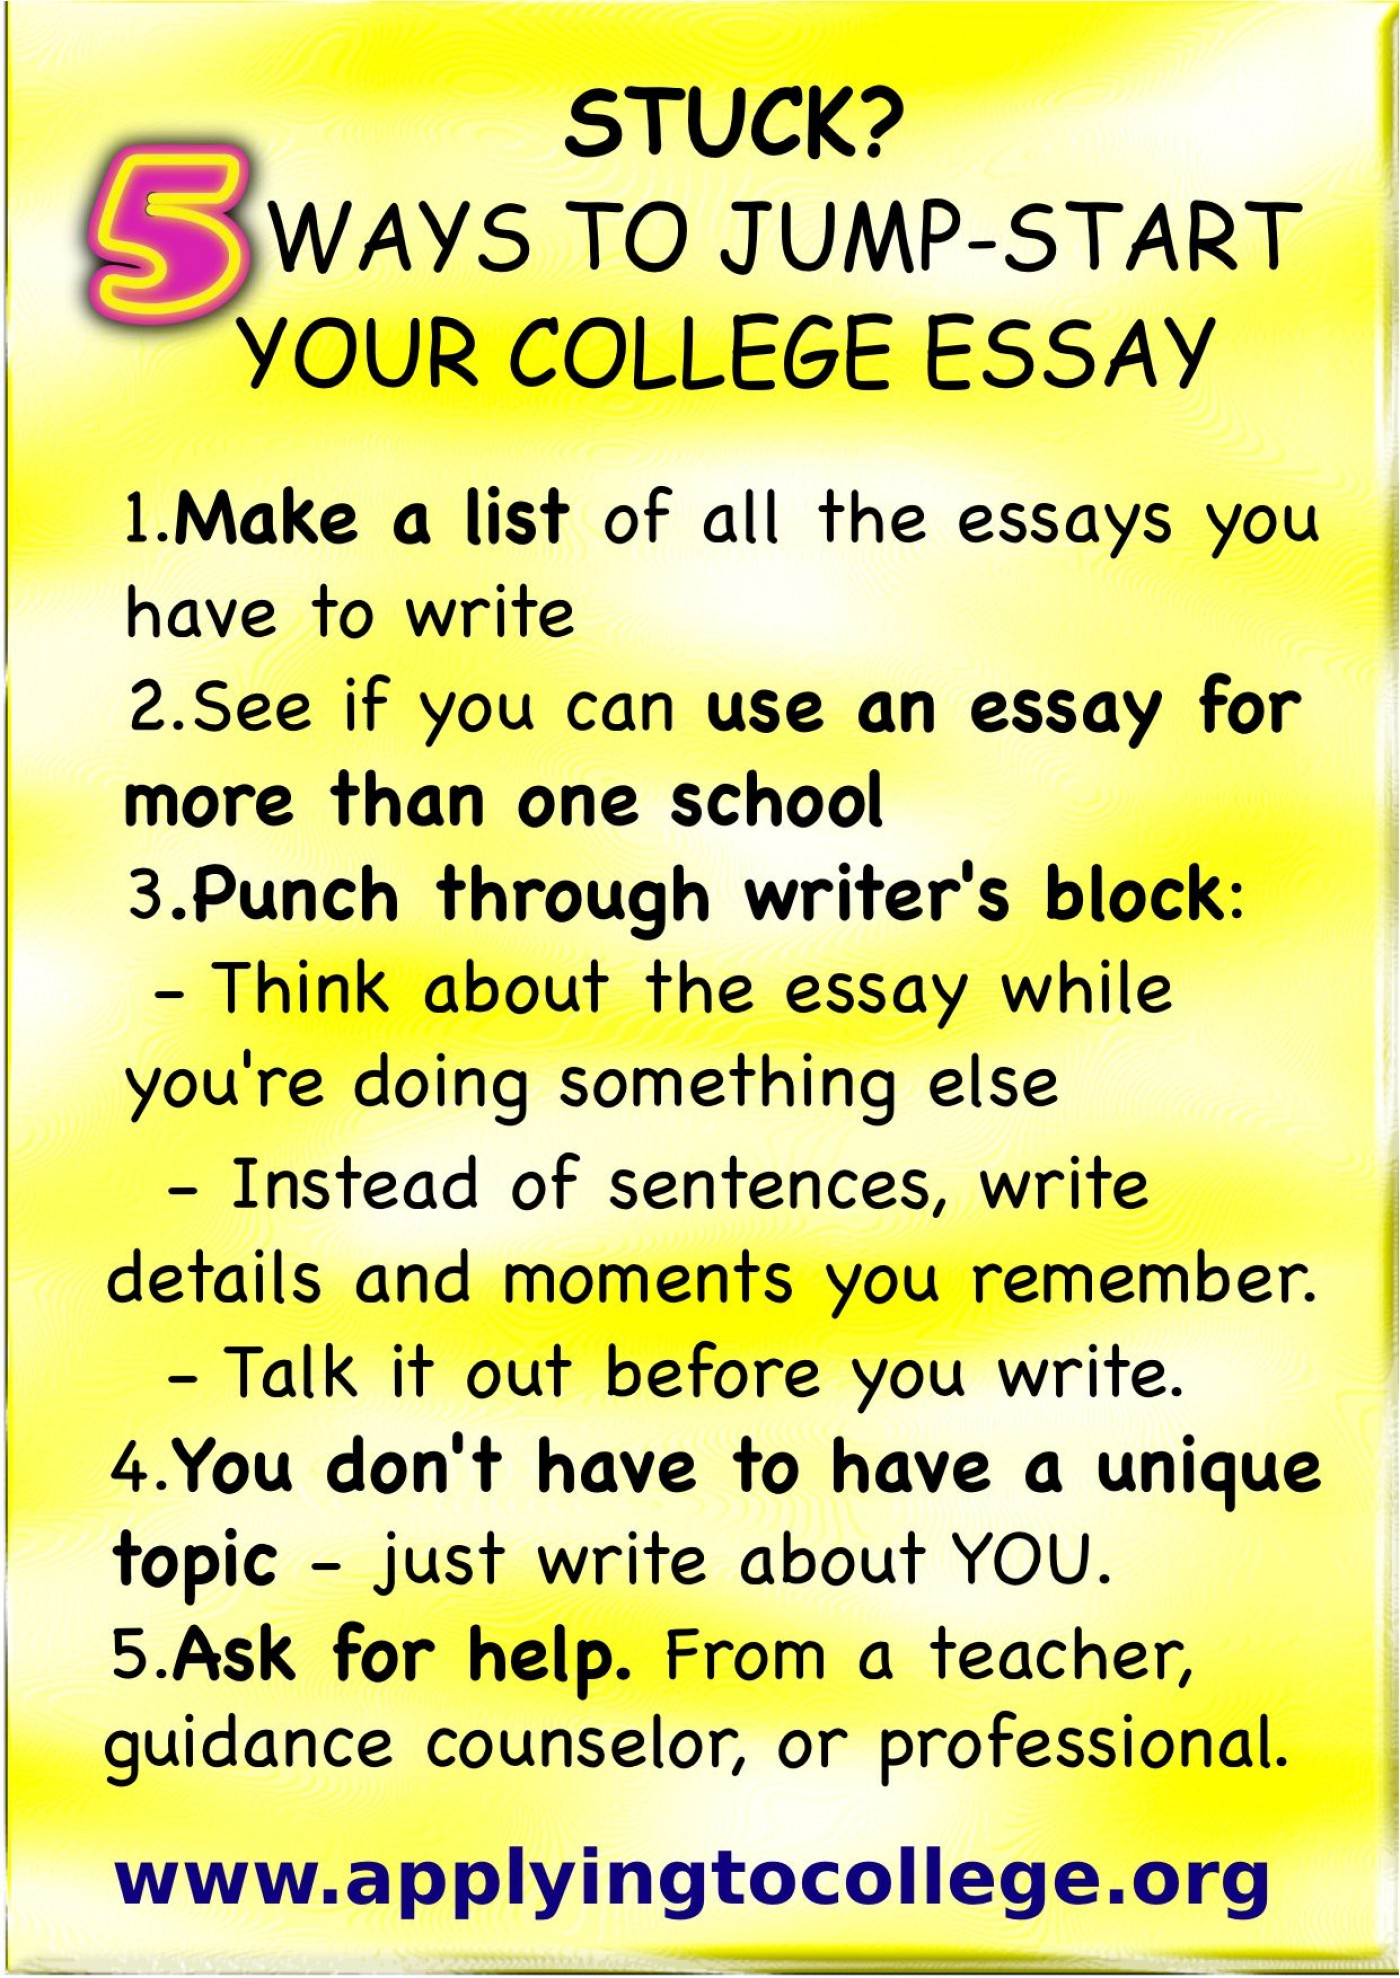 016 Essay Example Writing College Application Rare A Topics To Write On Tips For About Yourself 1400